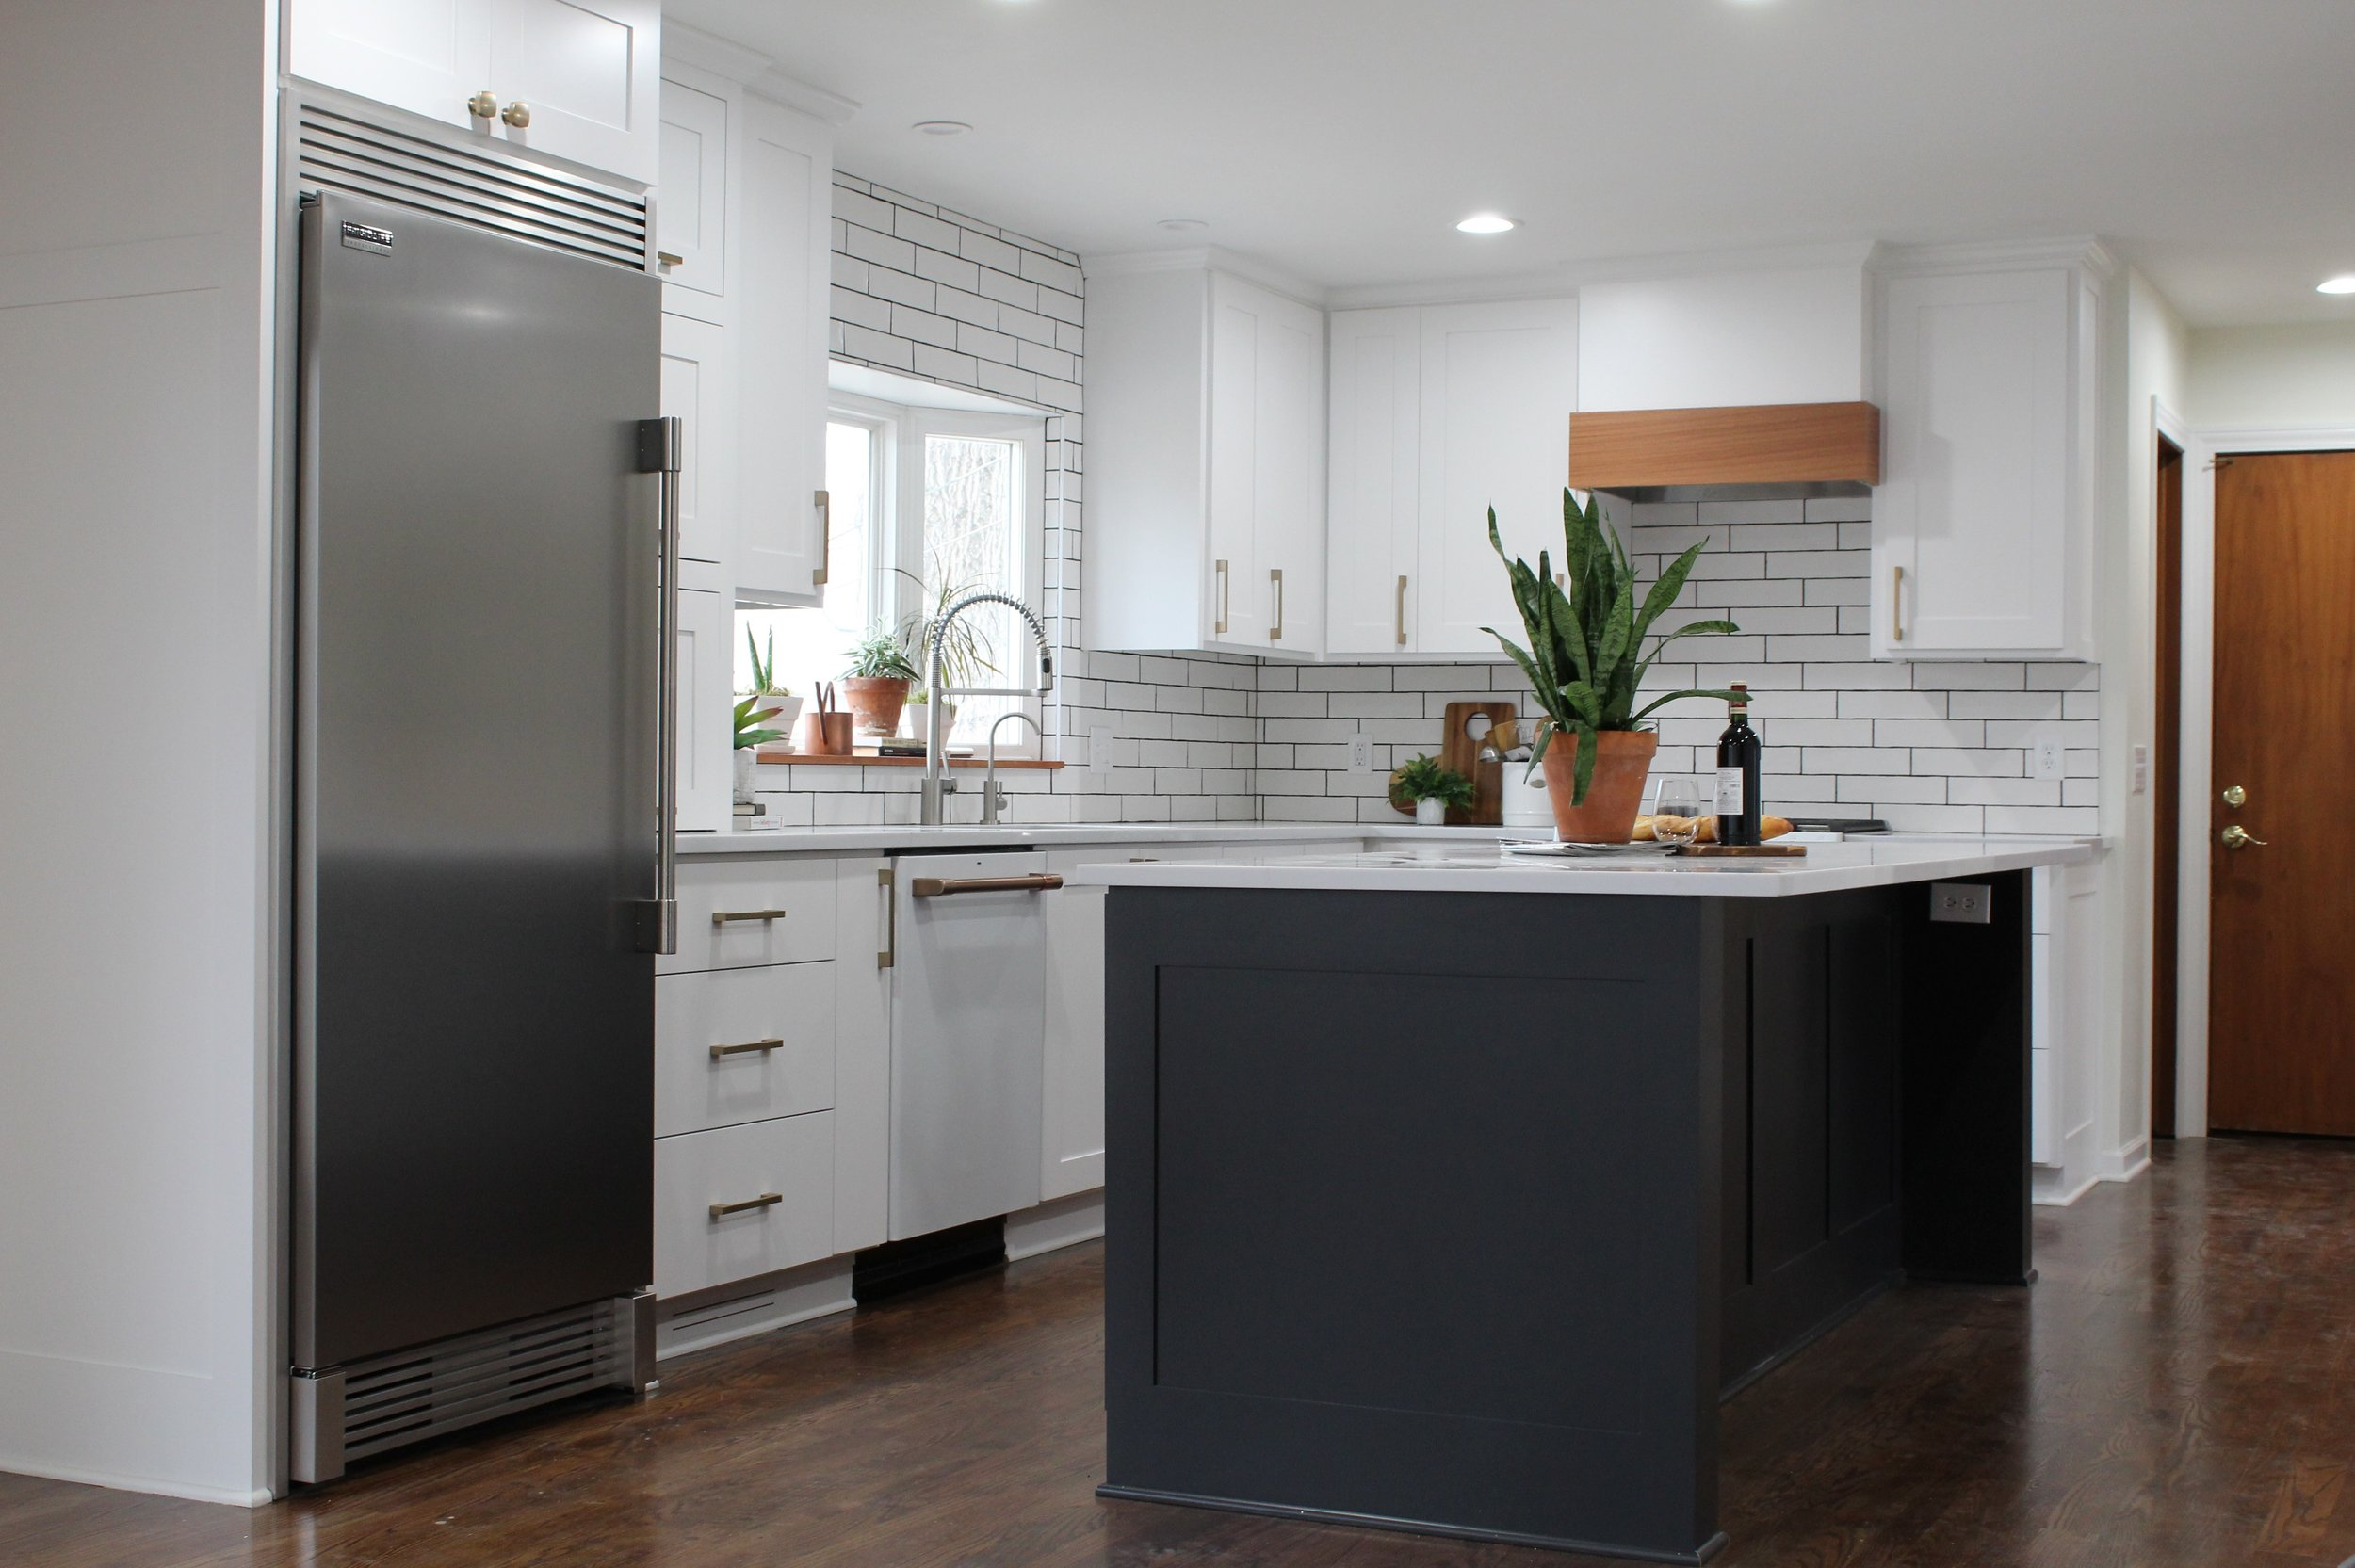 Collaboration with Erica Kay Remodeling + Design